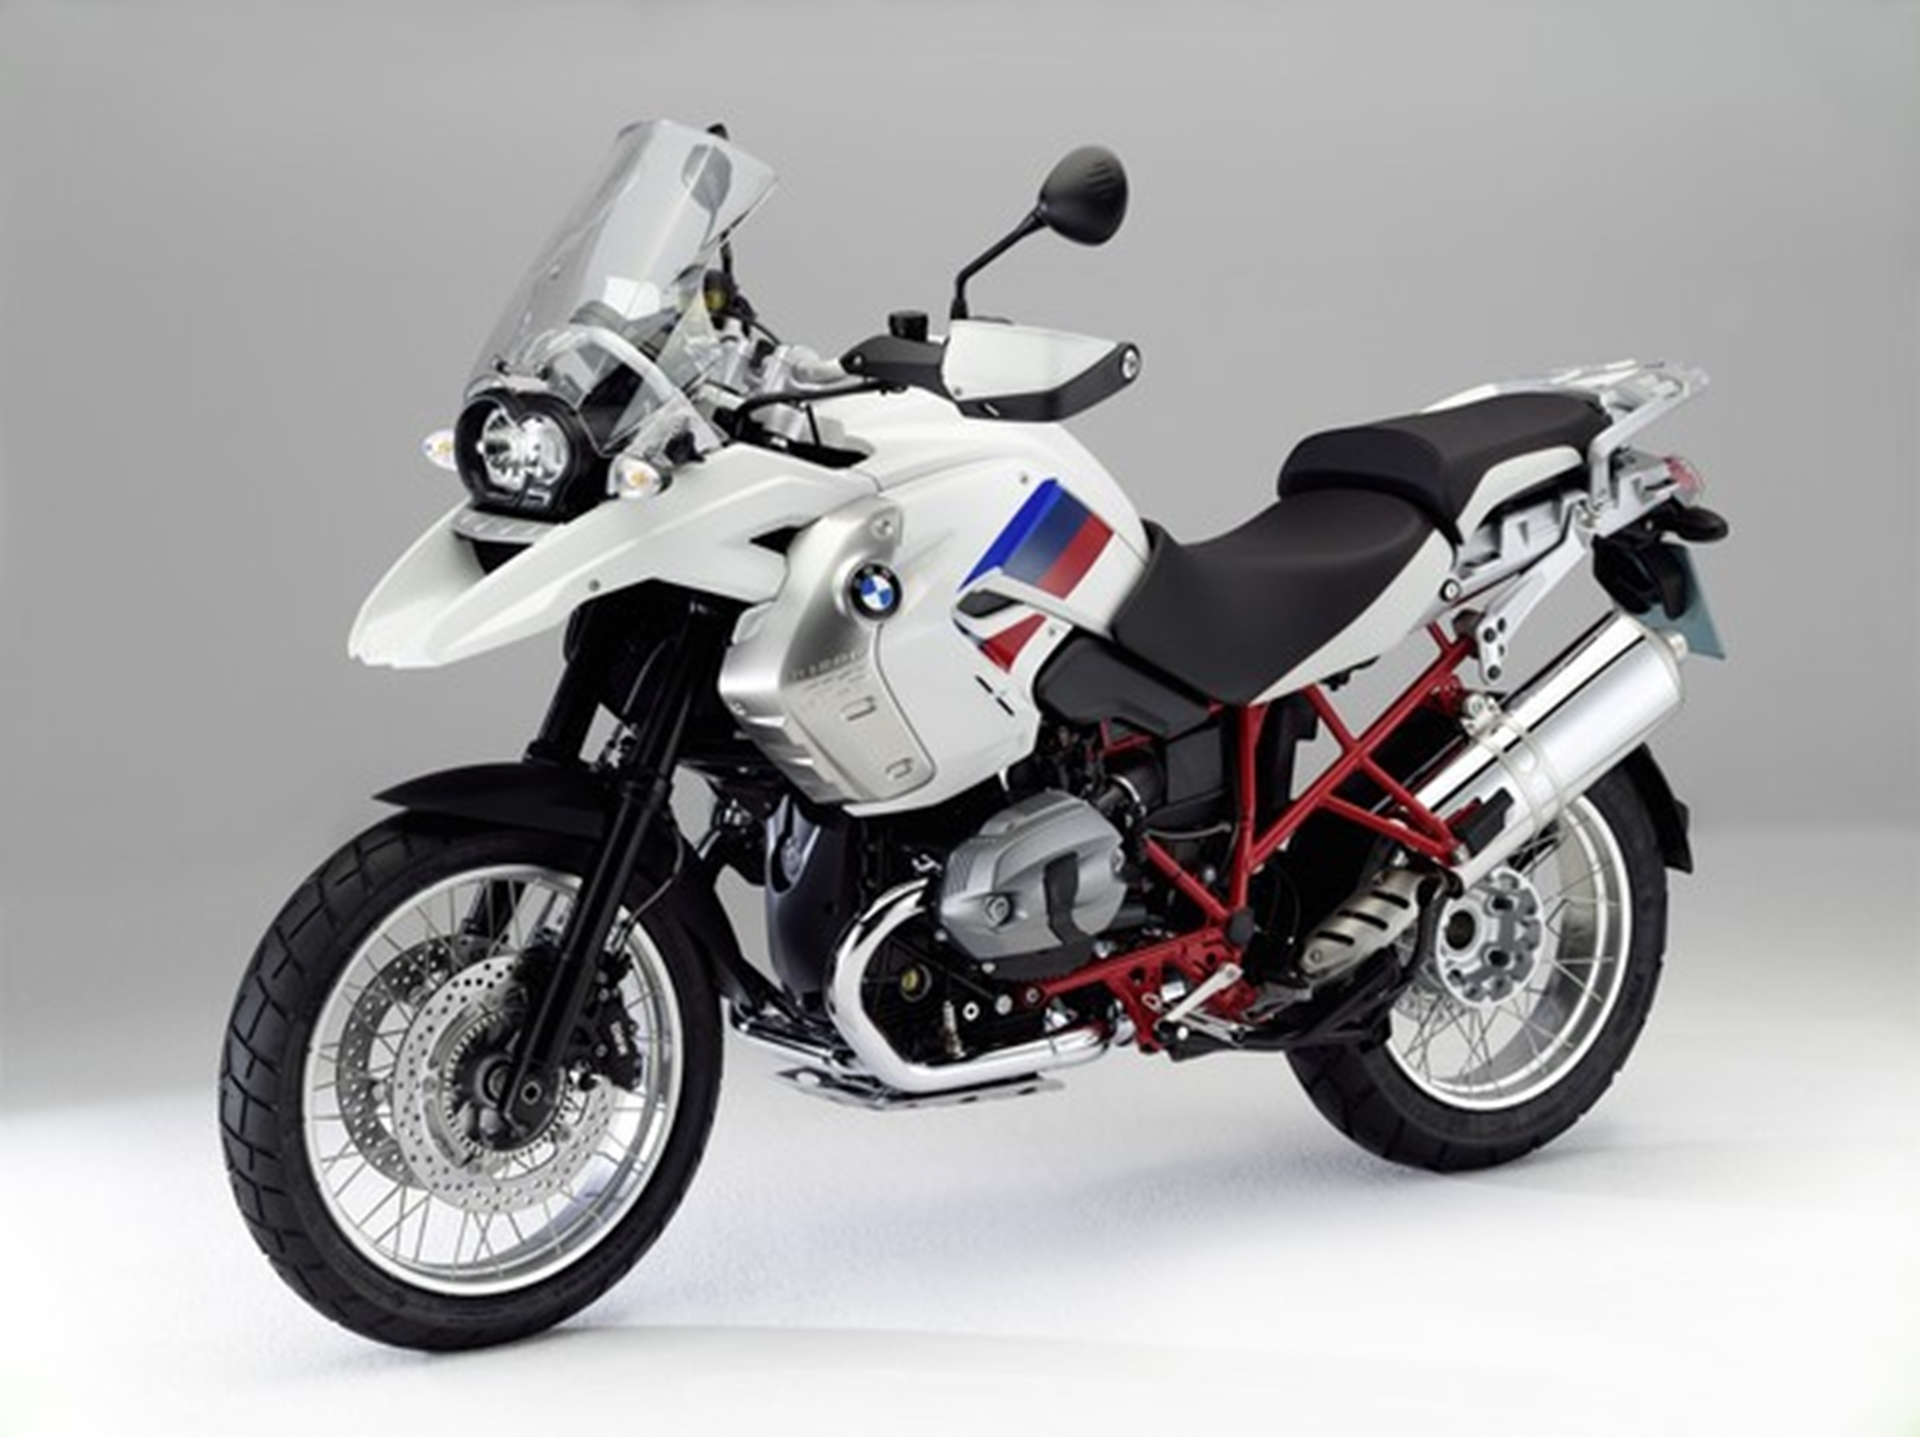 United Kingdom best selling motorcycle